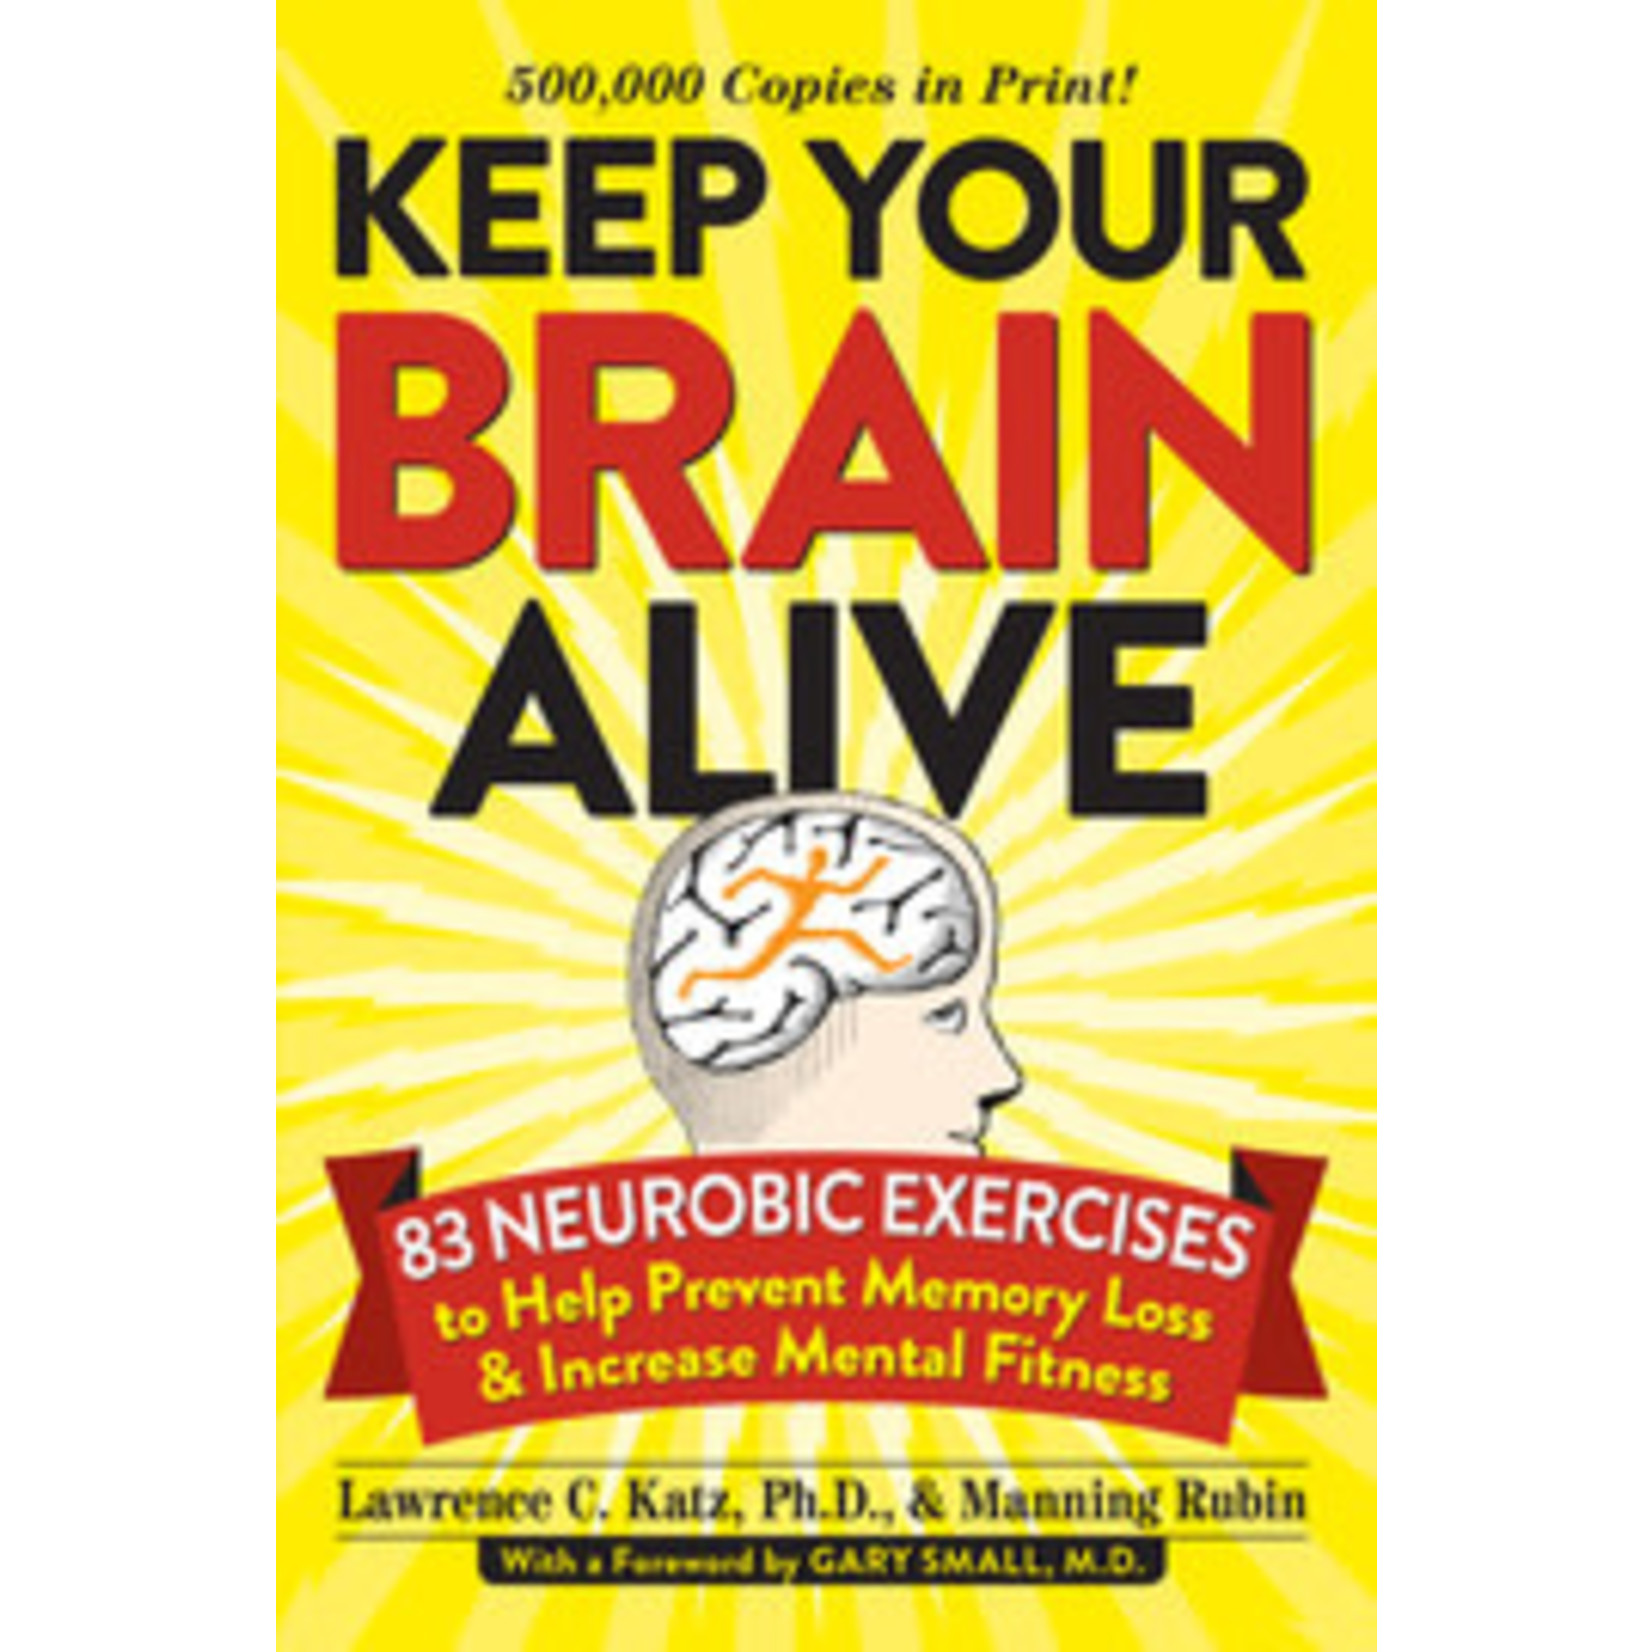 KEEP YOUR BRAIN ALIVE BOOK